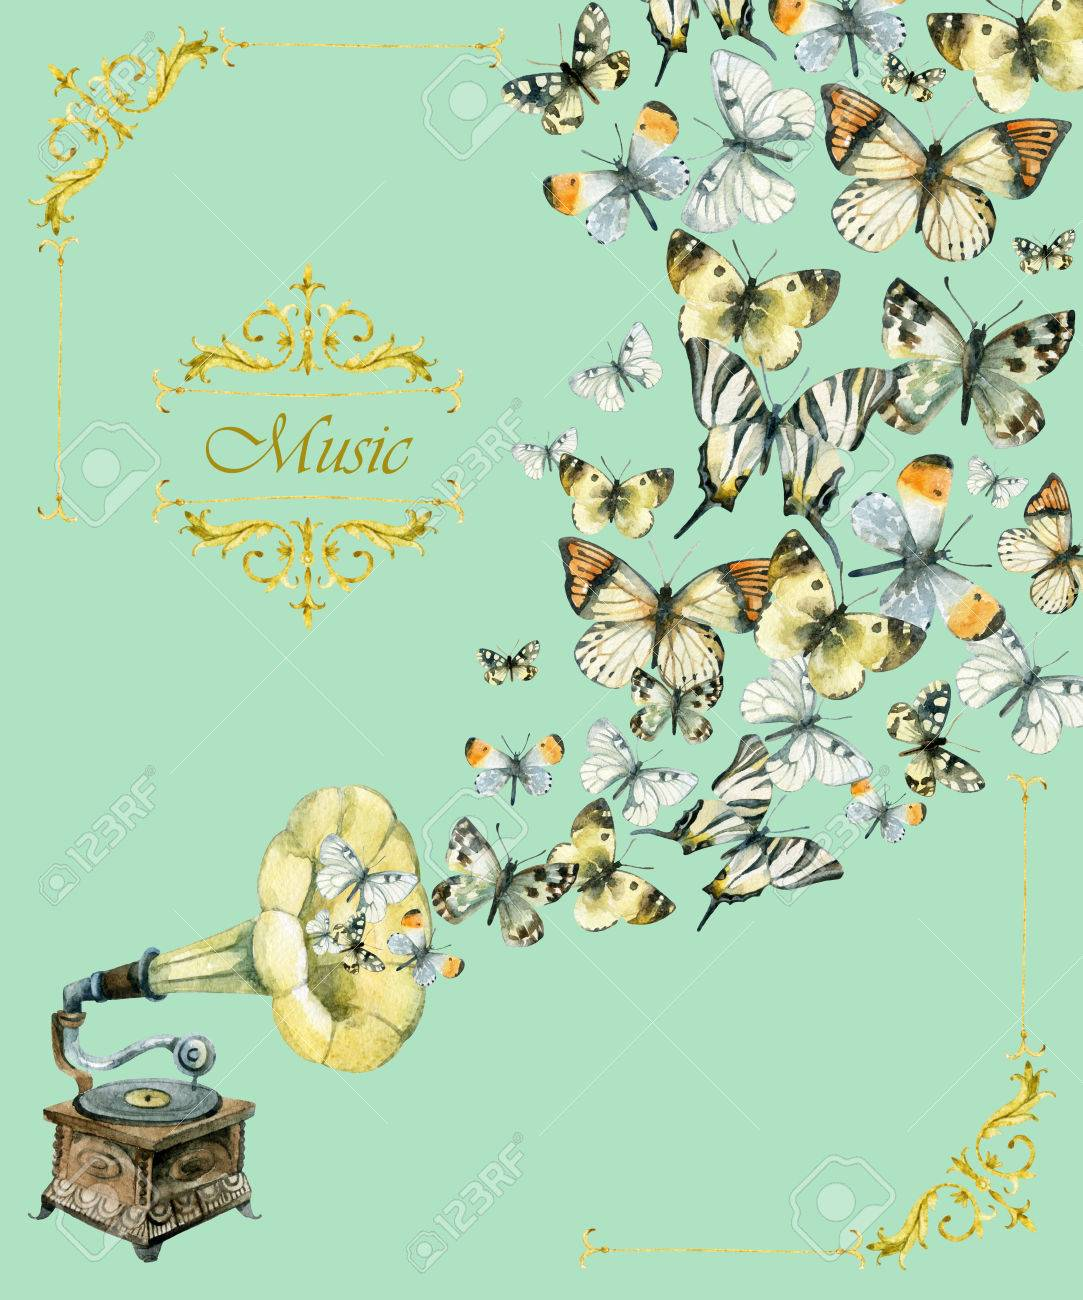 Most Inspiring Wallpaper Music Watercolor - 85361347-vinyl-gramophone-and-butterflies-retro-gramophone-watercolor-phonograph-retro-music-poster-hand-pain  Graphic_40853.jpg